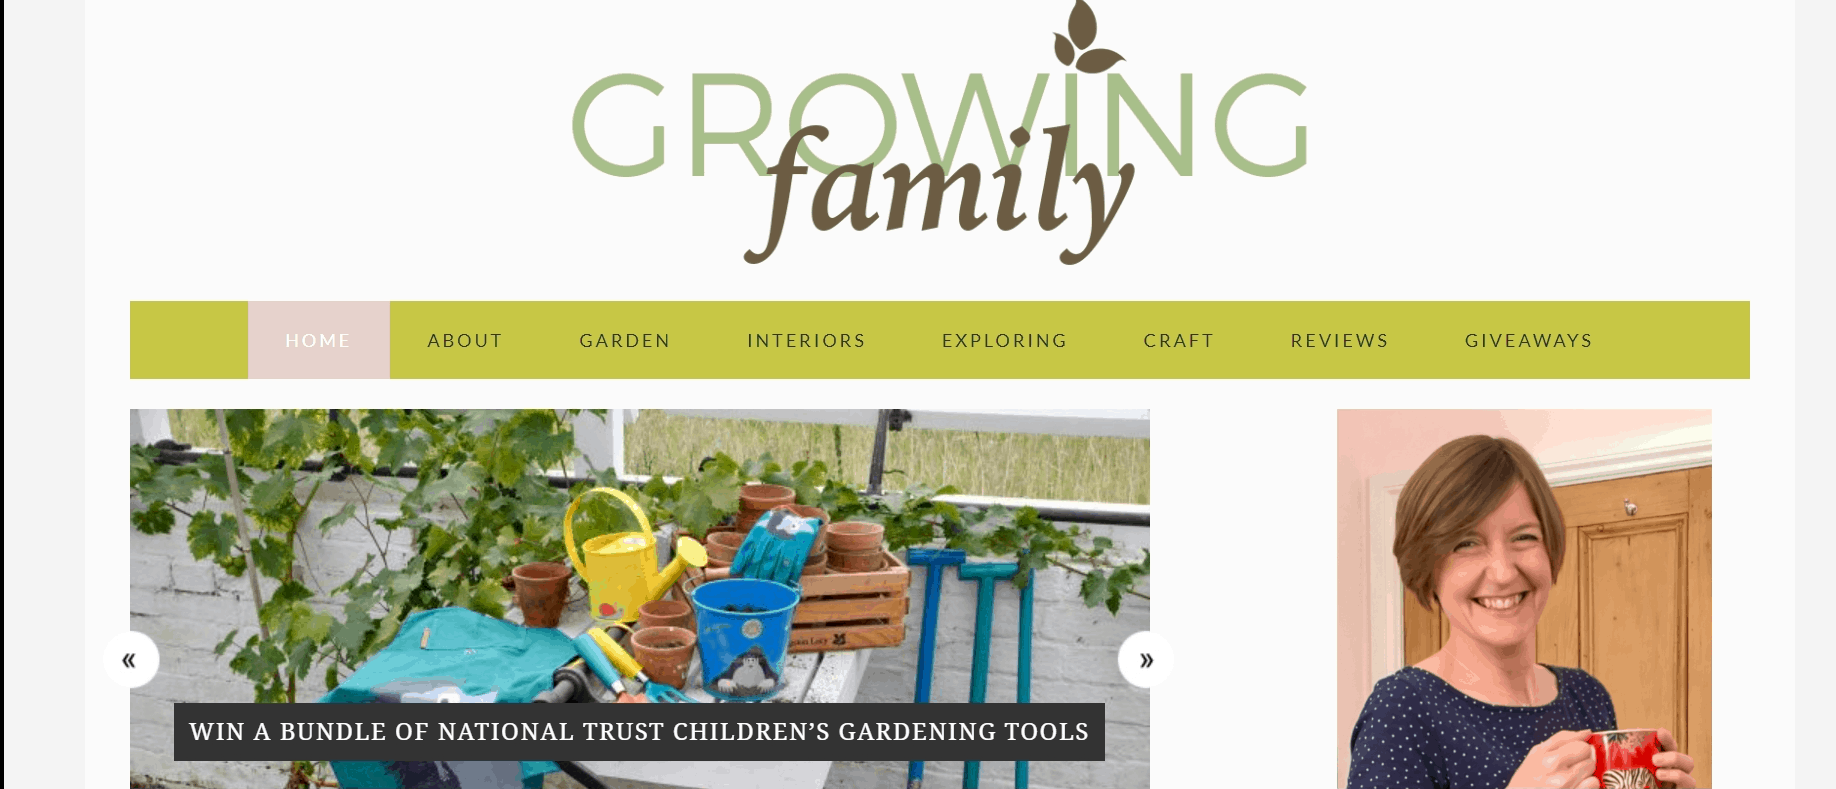 Growing Family Blog Banner With Catherine Hughes